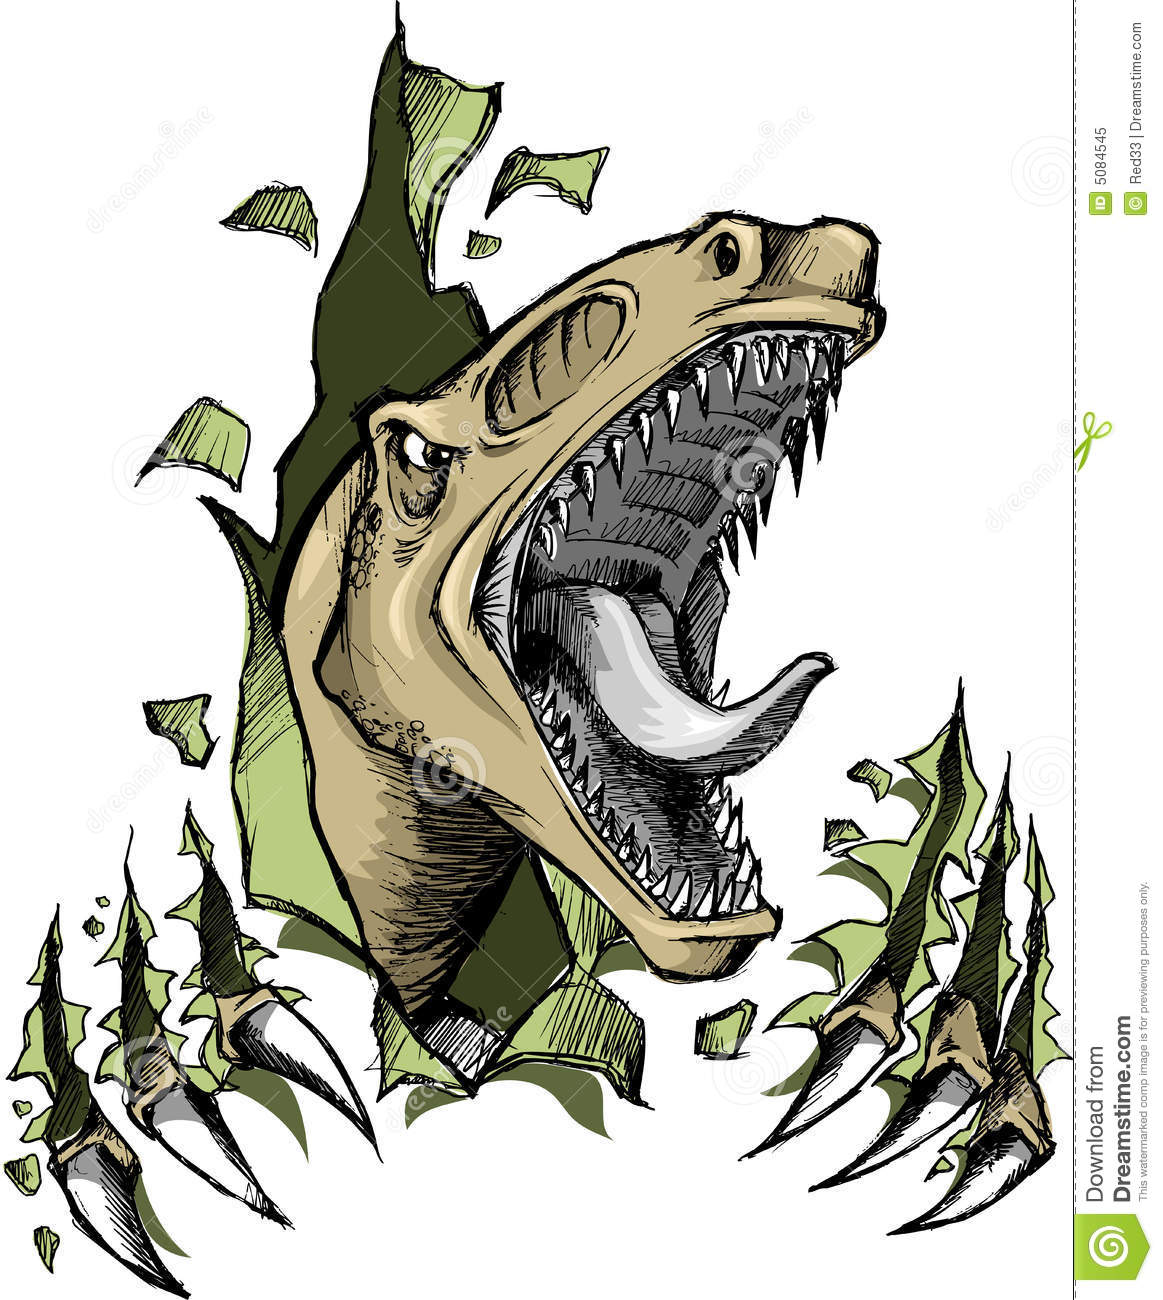 Raptor Dinosaur Vector Royalty Free Stock Photo   Image  5084545